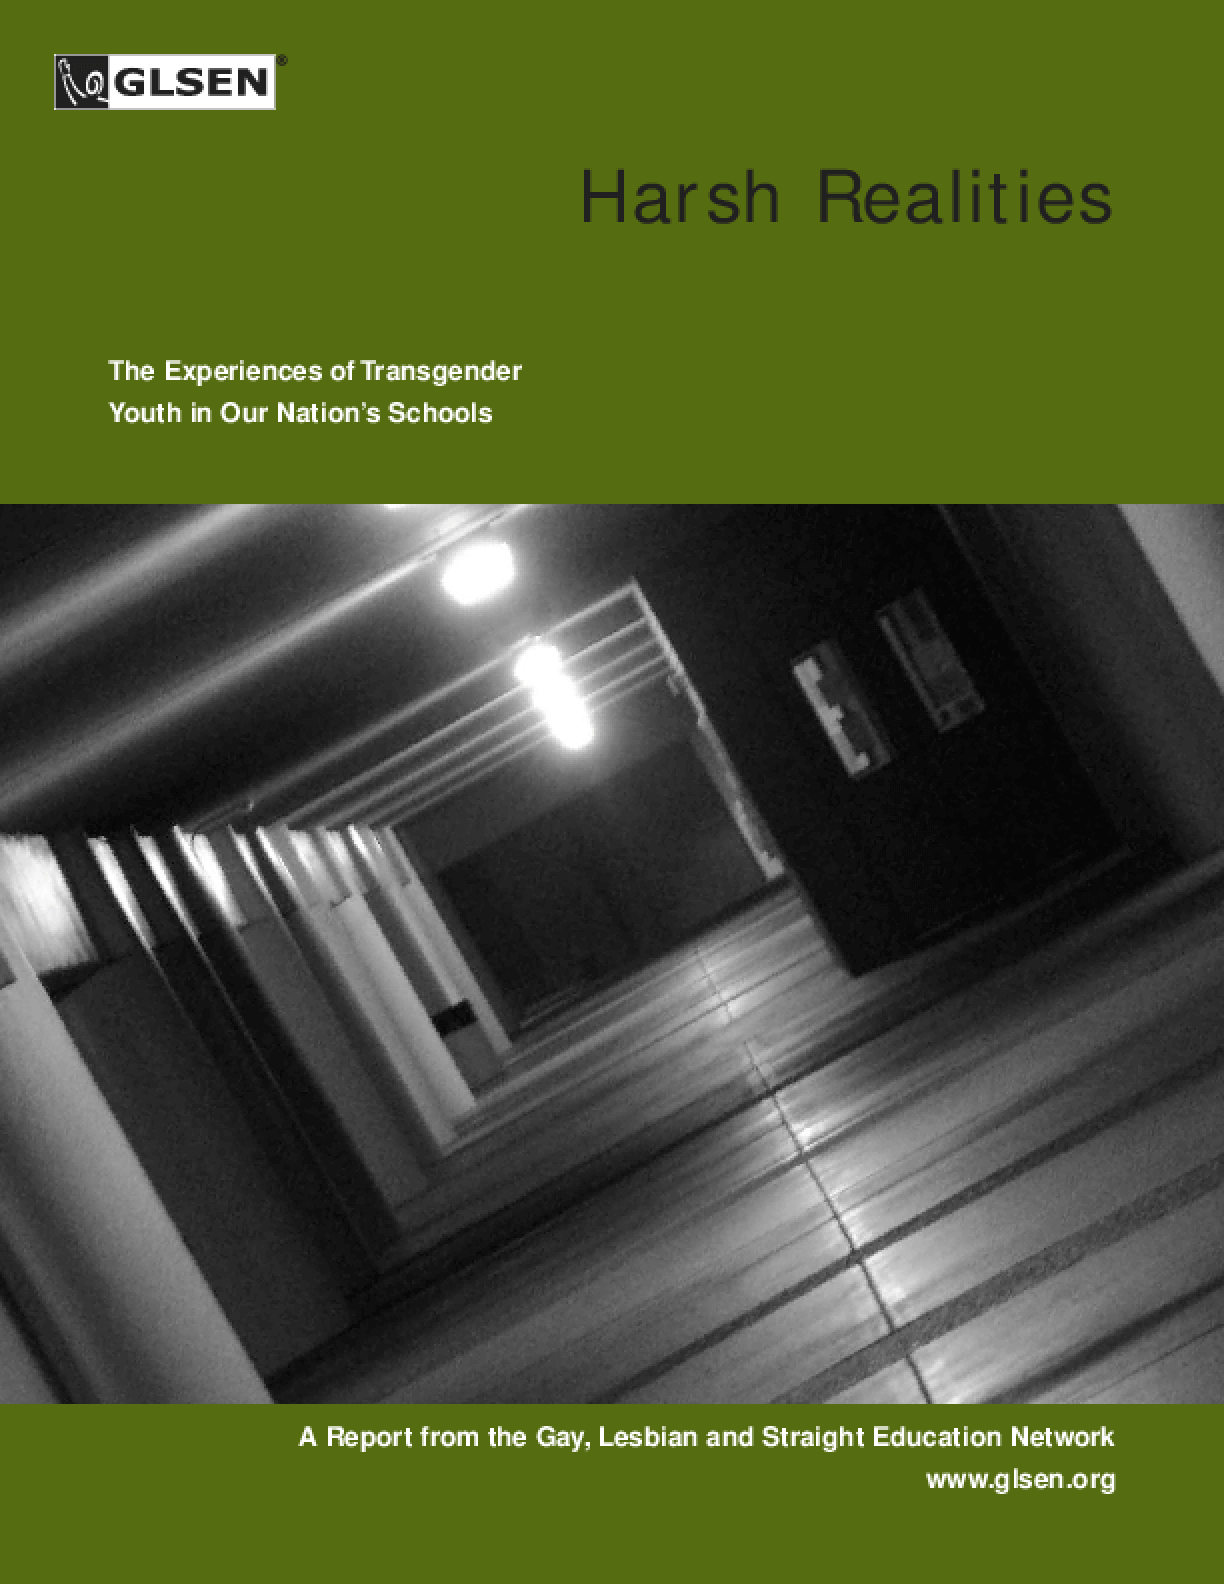 Harsh Realities: The Experiences of Transgender Youth in Our Nation's Schools